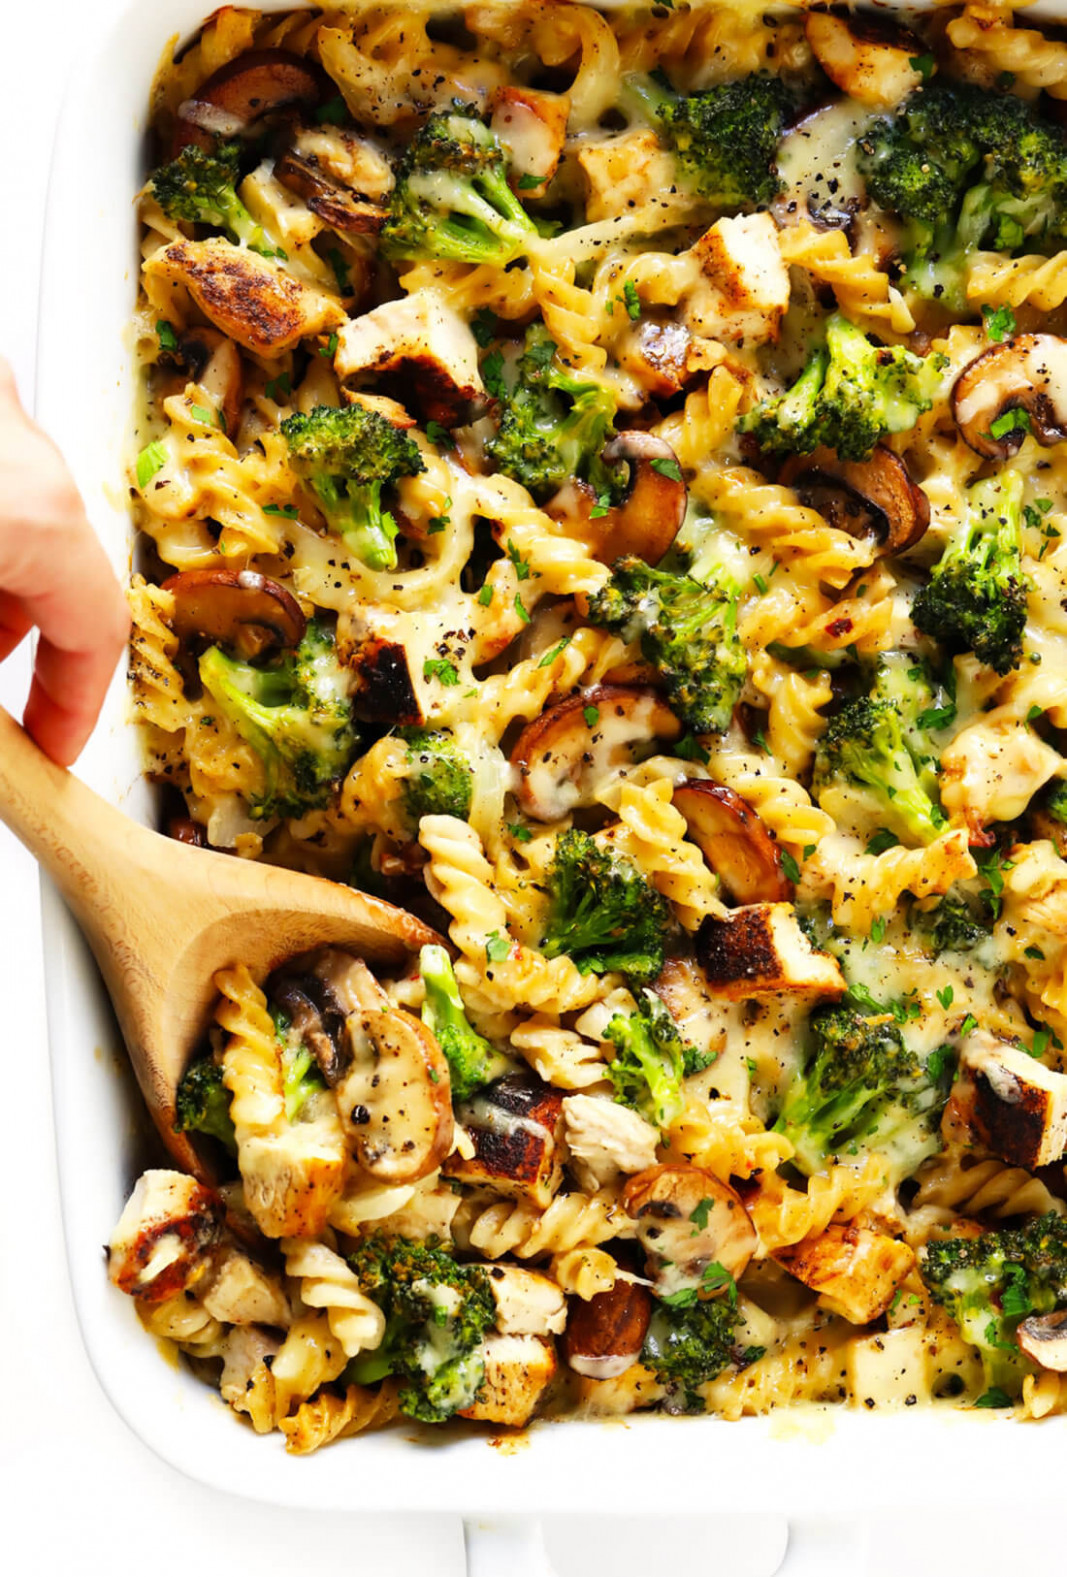 Healthier Broccoli Chicken Casserole Recipe | Gimme Some Oven - leftover roast chicken recipes